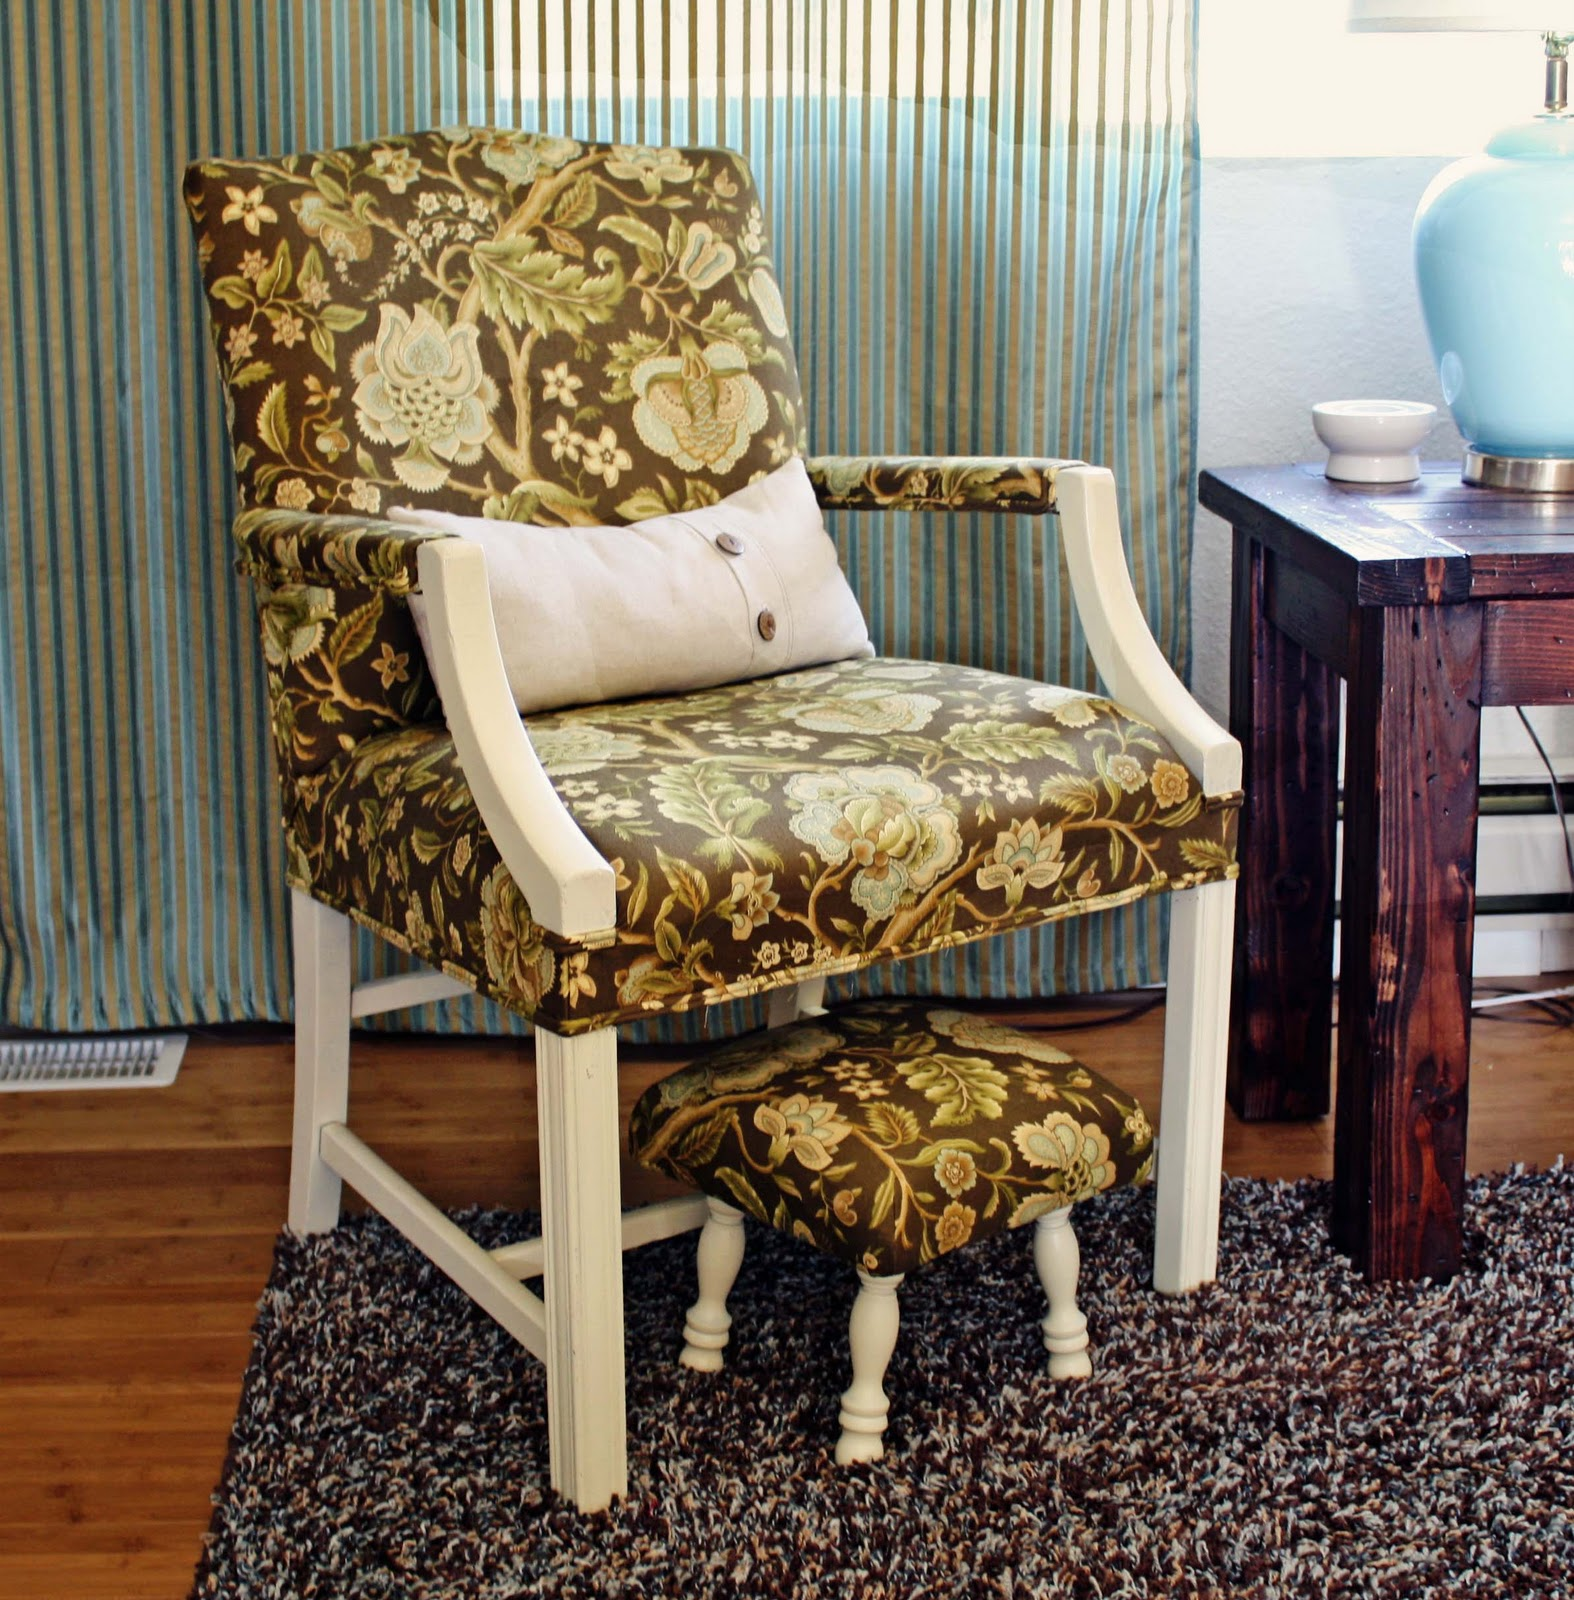 running with scissors upholstered footstool ballard design knock upholstered footstool ballard design knock off